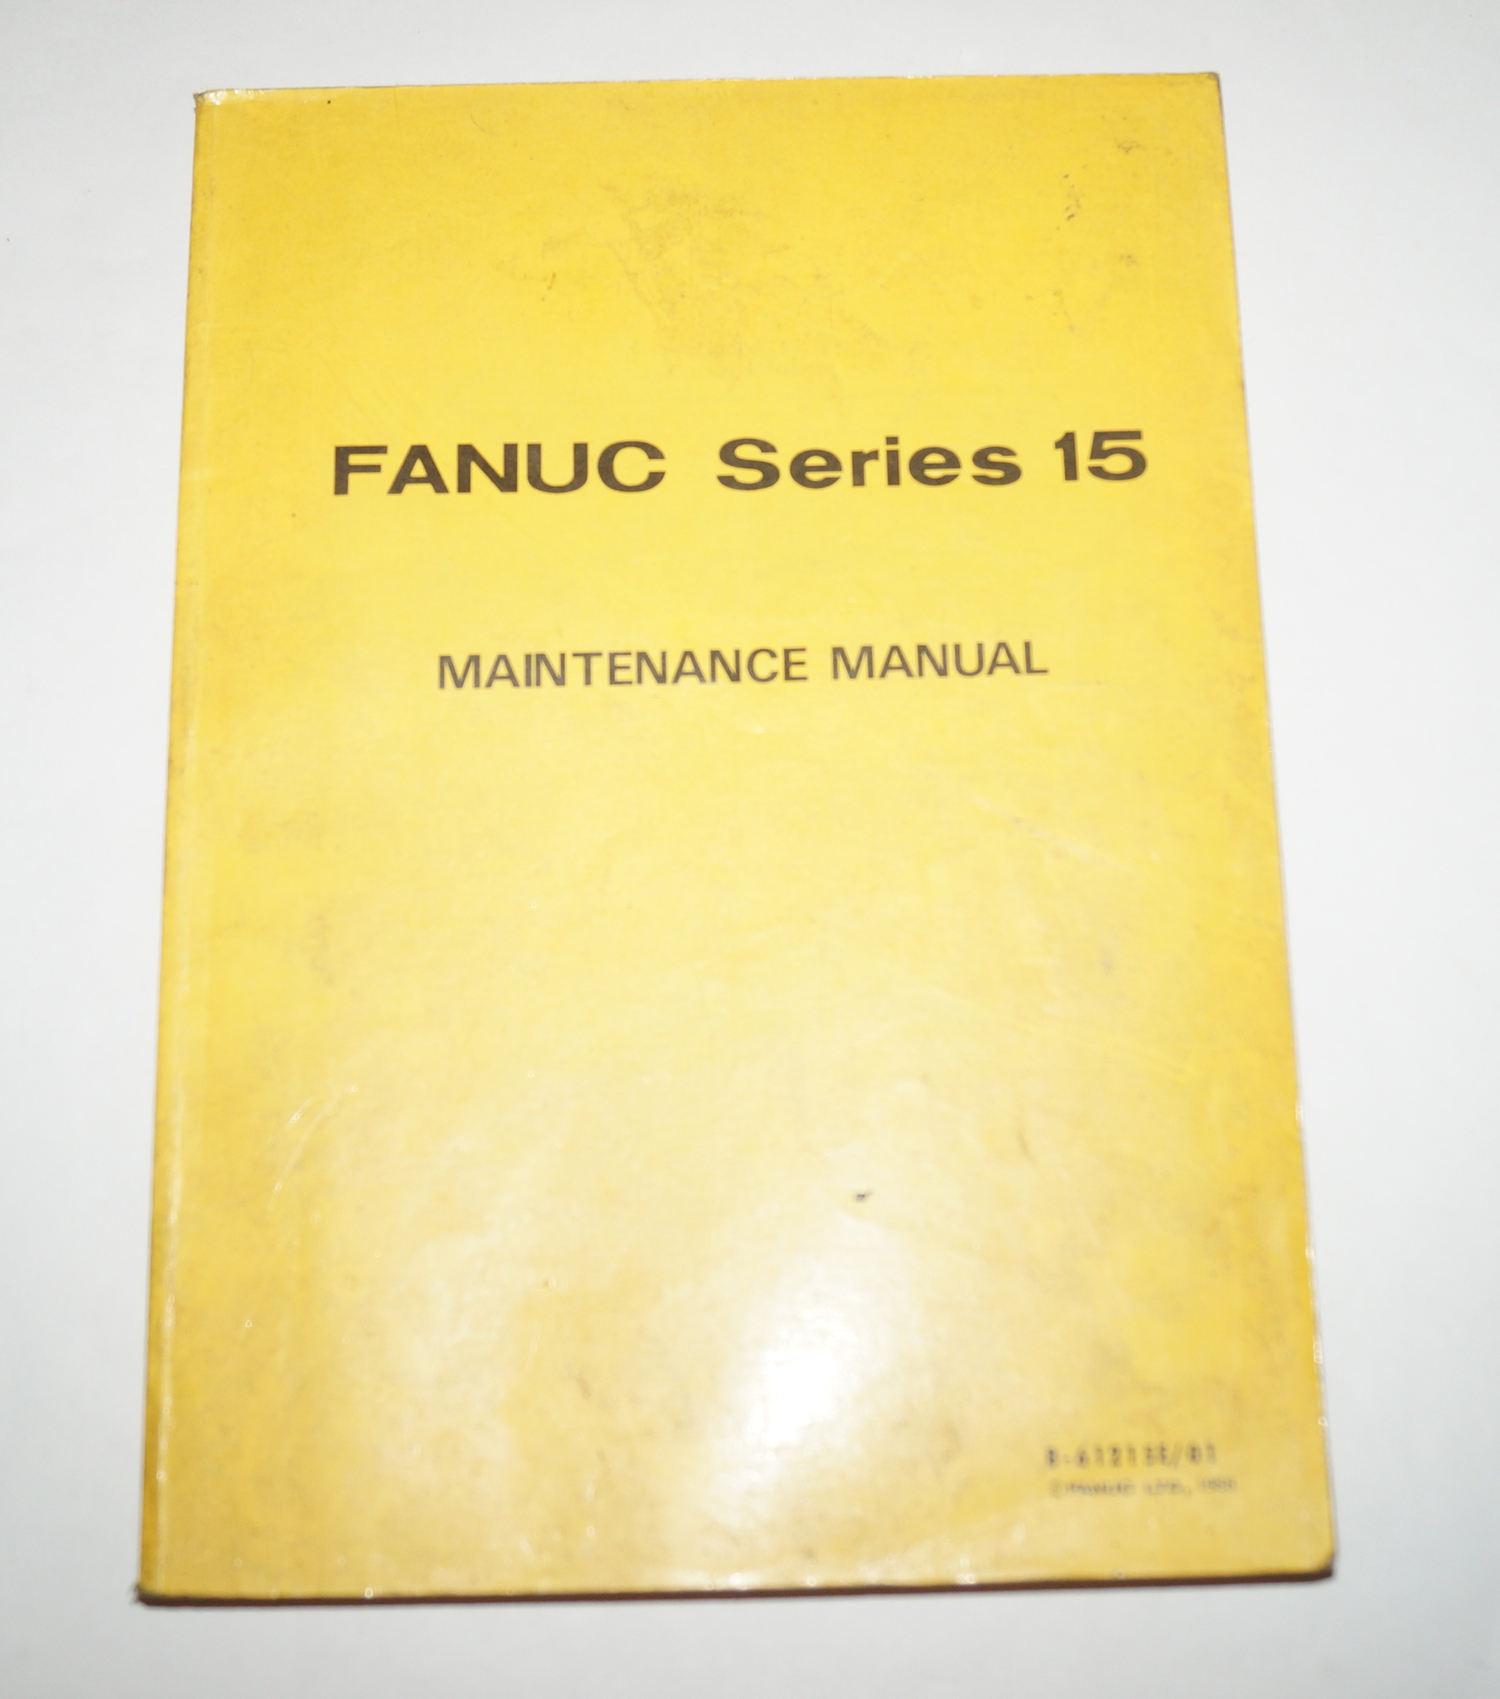 Fanuc AC Series 15 Maintenance Manual B-61215E